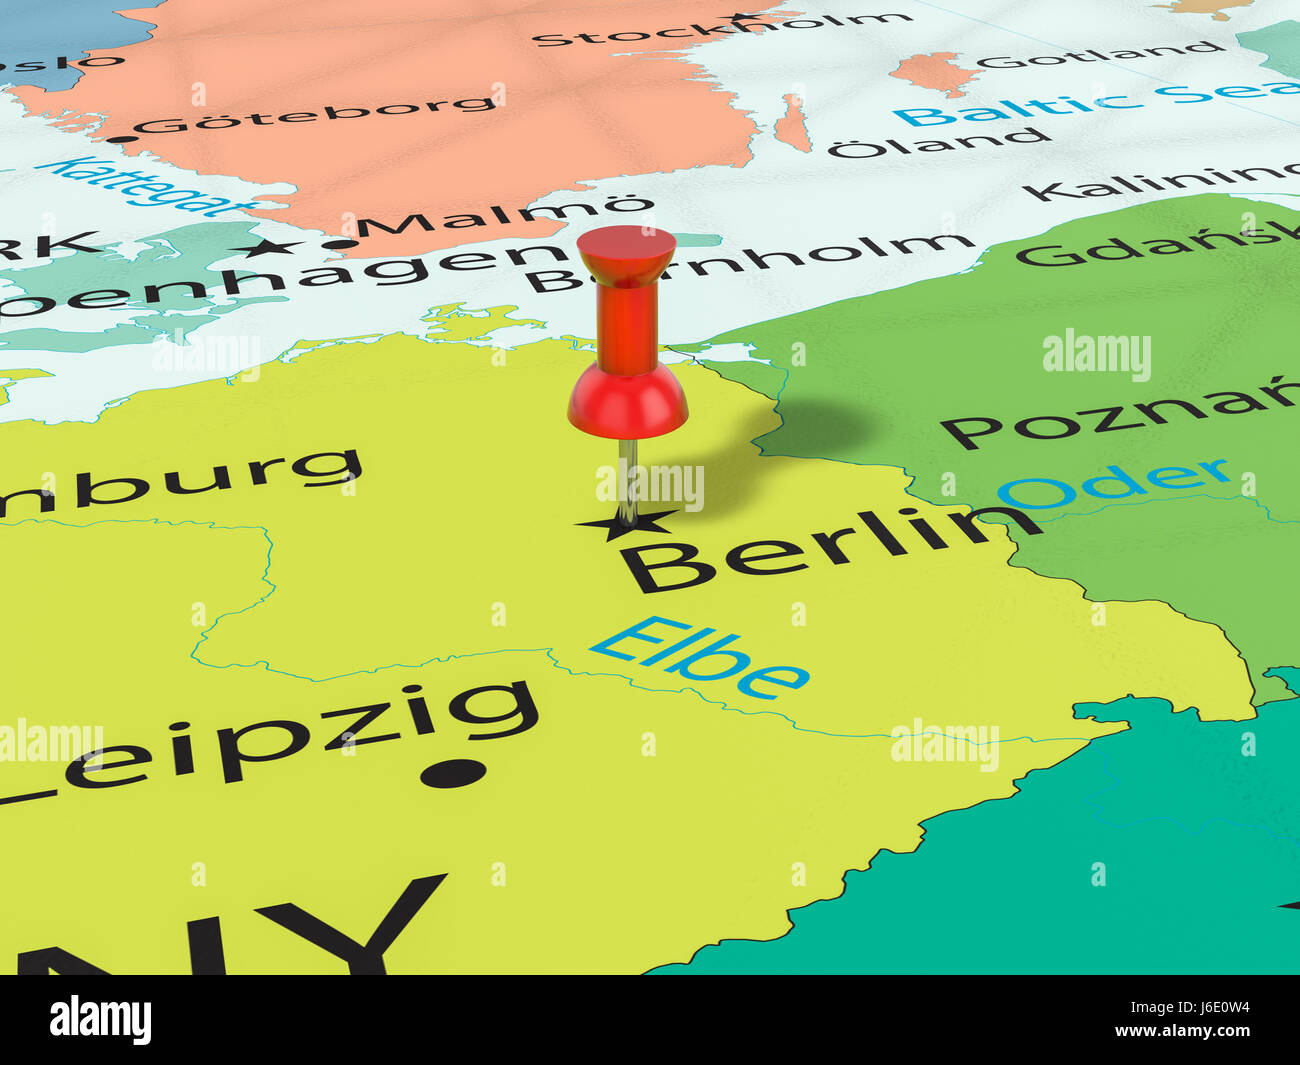 Berlin Pinned On Map Europe Stock Photos Berlin Pinned On Map